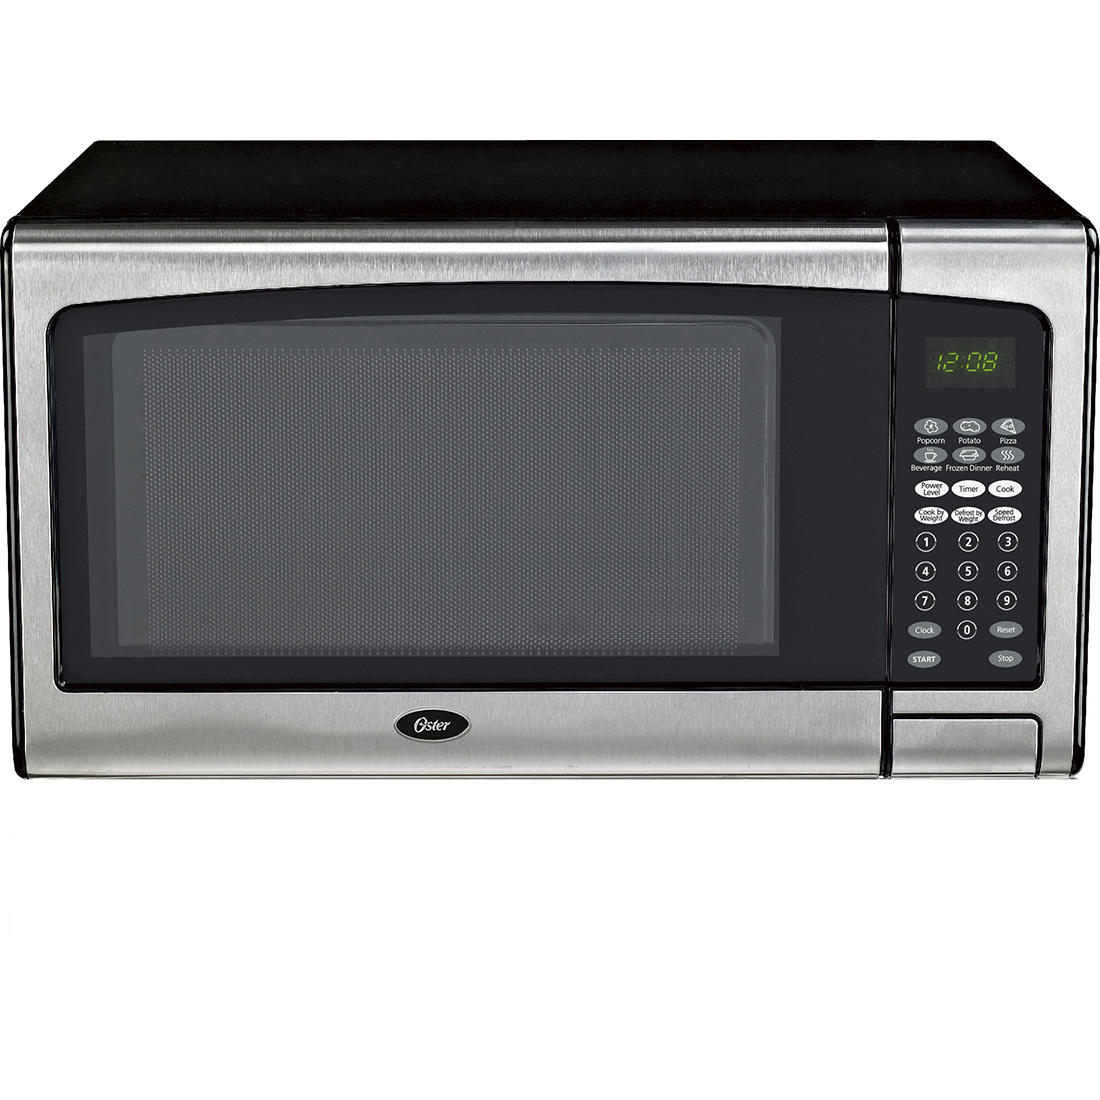 Oster Microwave Oven 1 3 Cu Ft